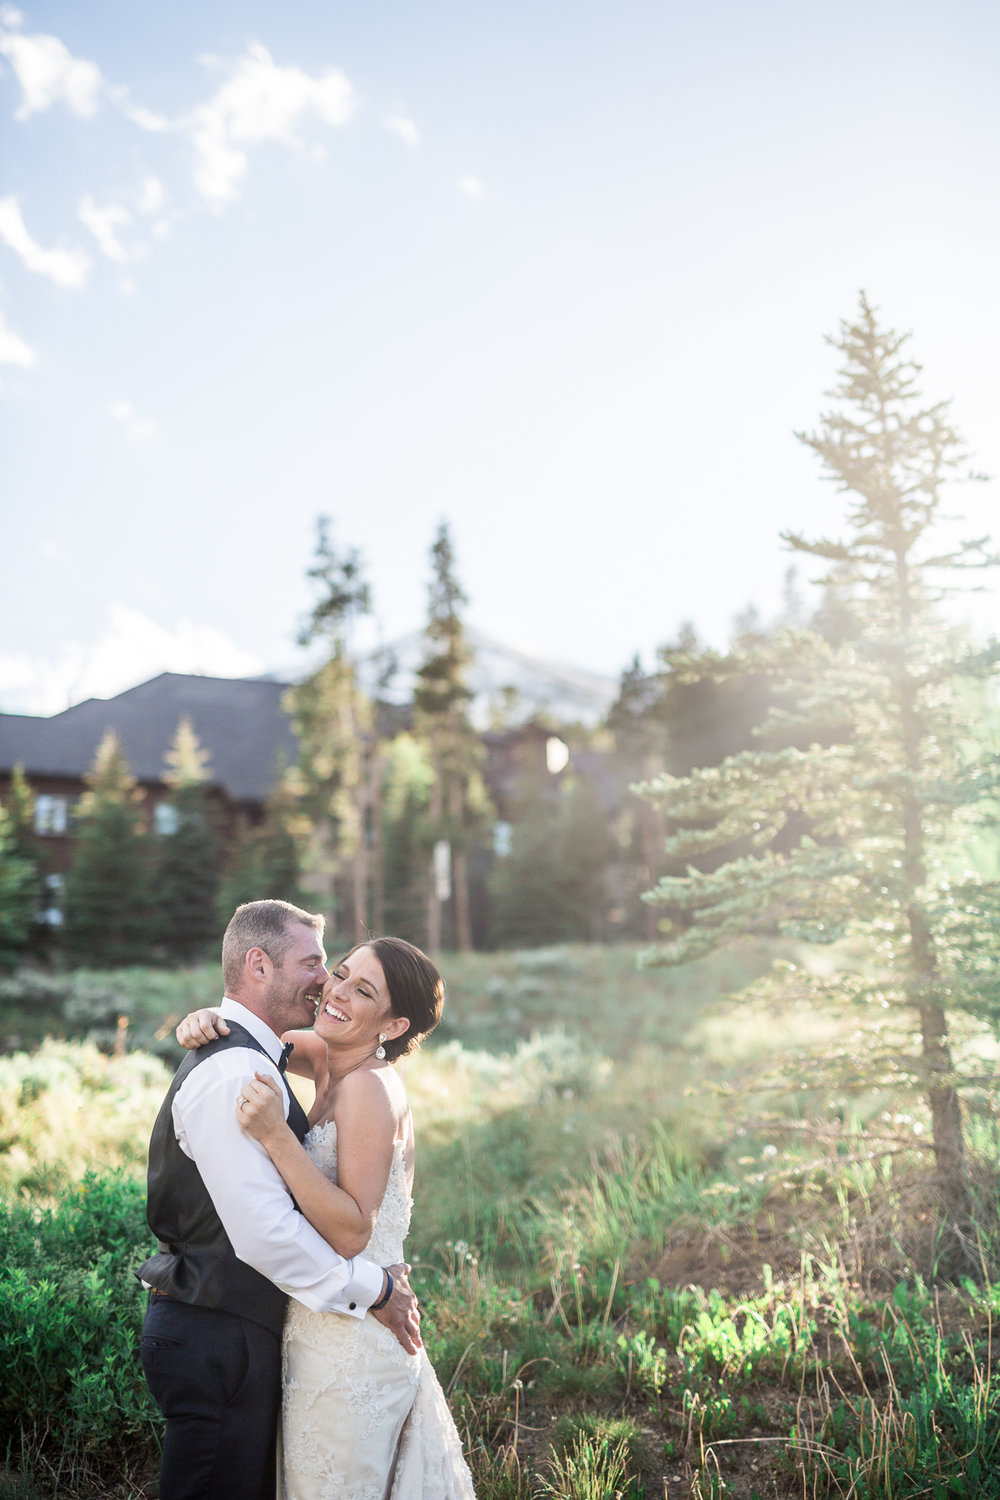 StaciDesign-Colorado-Wedding-5533.jpg